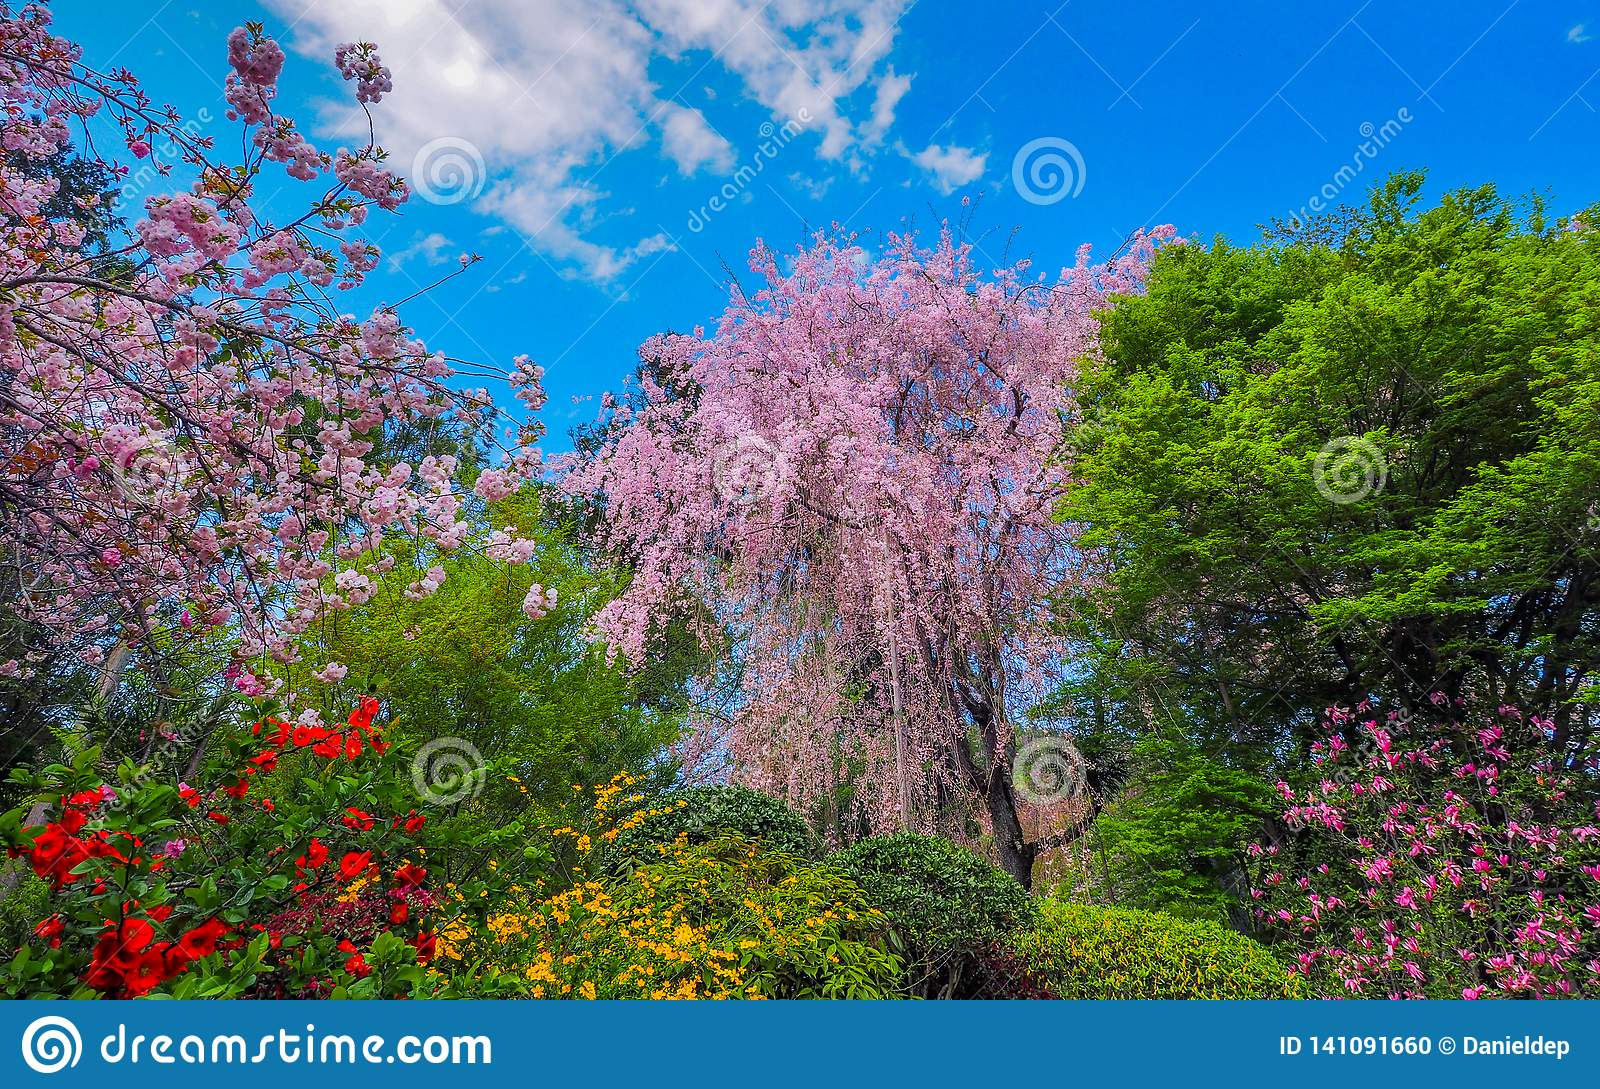 Blooming Weeping Cherry Tree Stock Photo Image Of Majestic